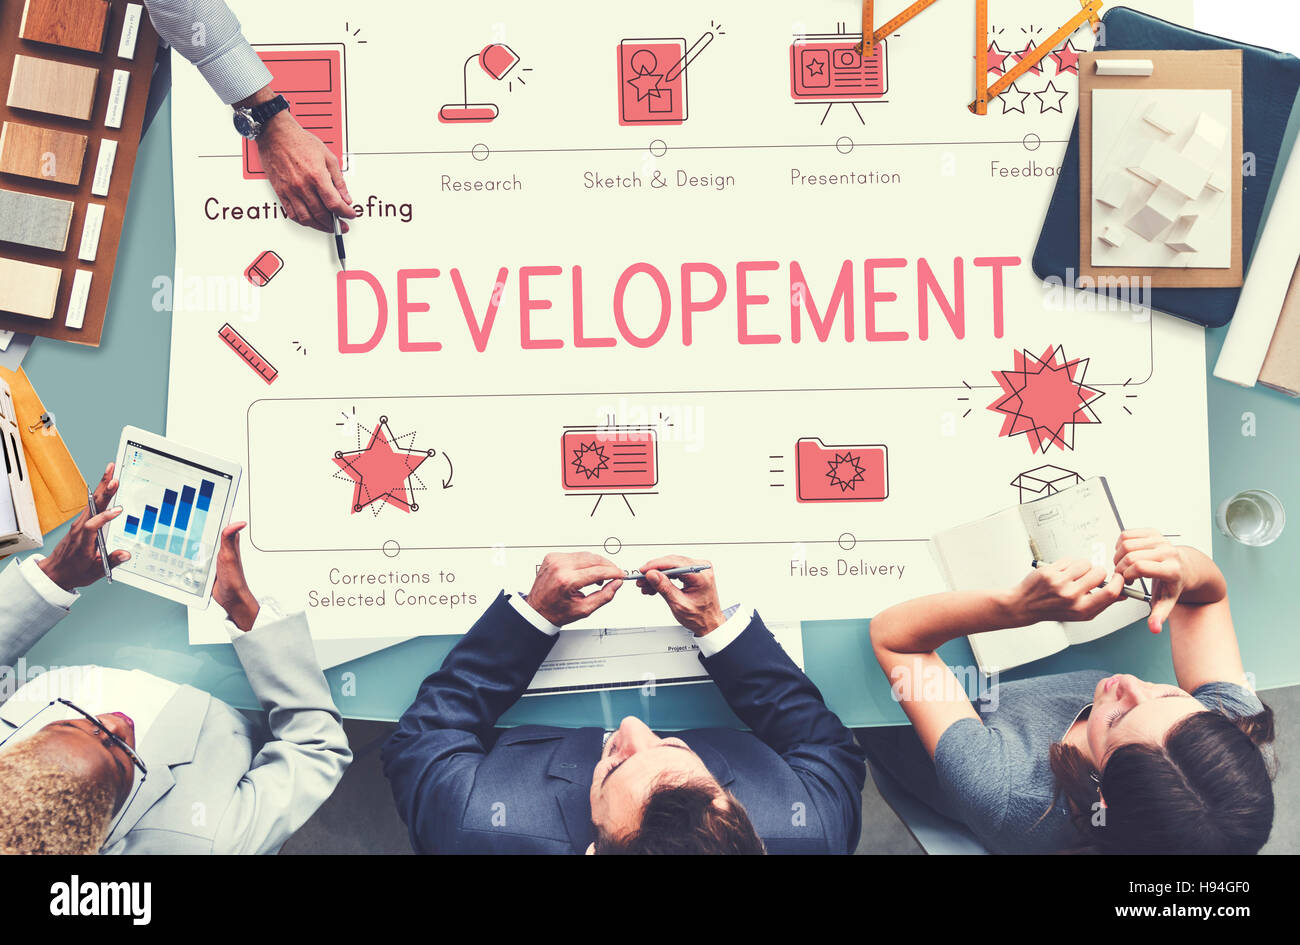 Design Development Visualize Creativity Concept - Stock Image